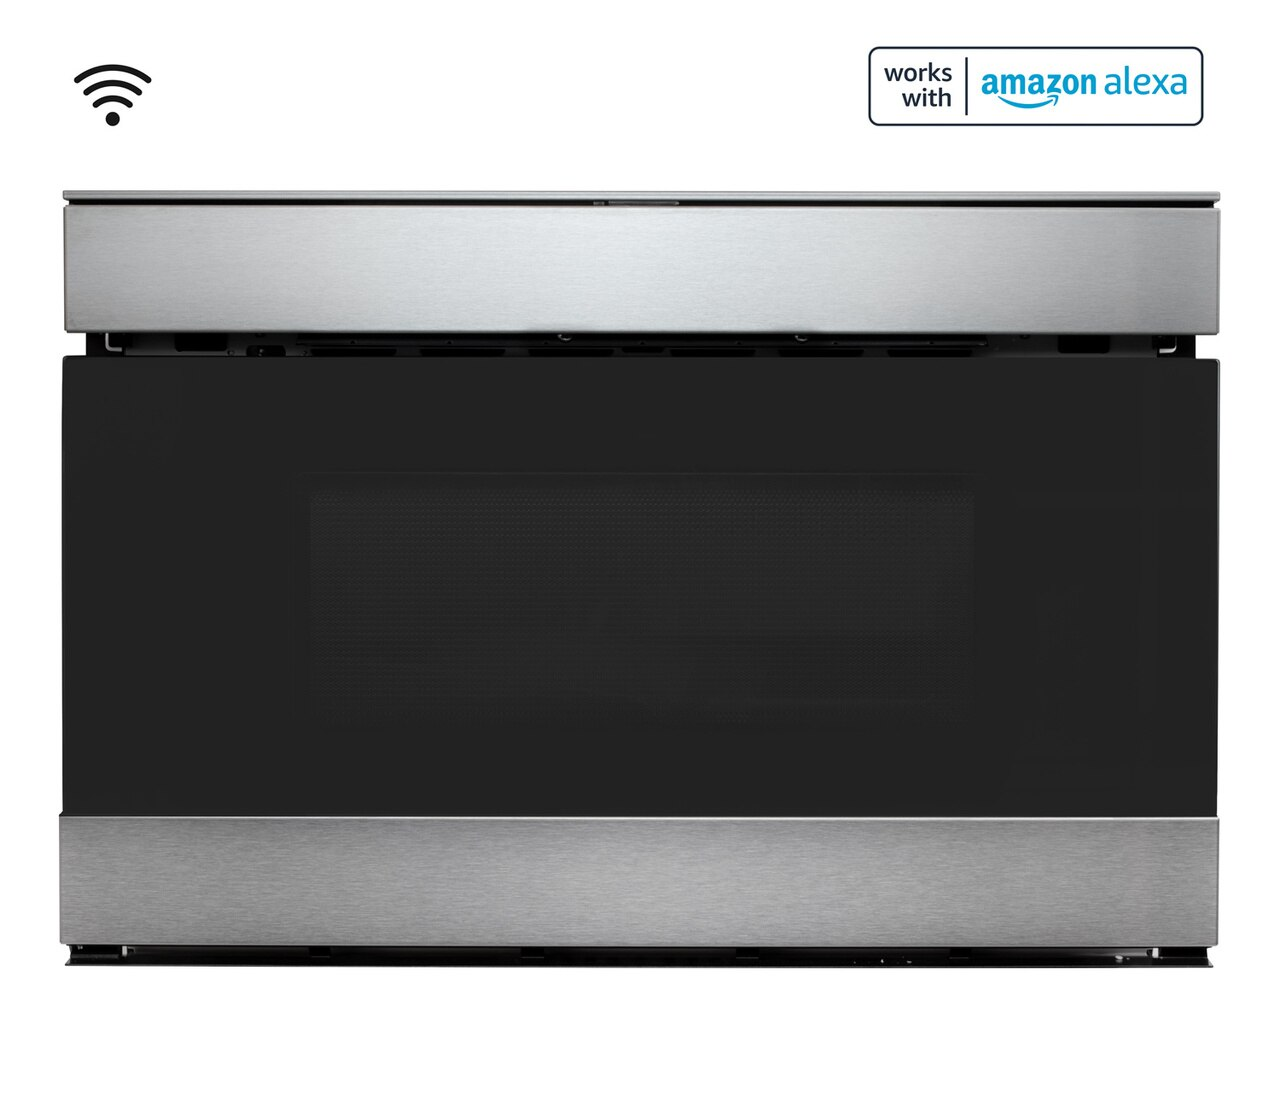 Pull-out Microwave: 24 in. Sharp Stainless Steel Smart Microwave Drawer Oven (SMD2489ES) Works with Alexa, and the Sharp Kitchen App on the App Store and Google Play: Head on